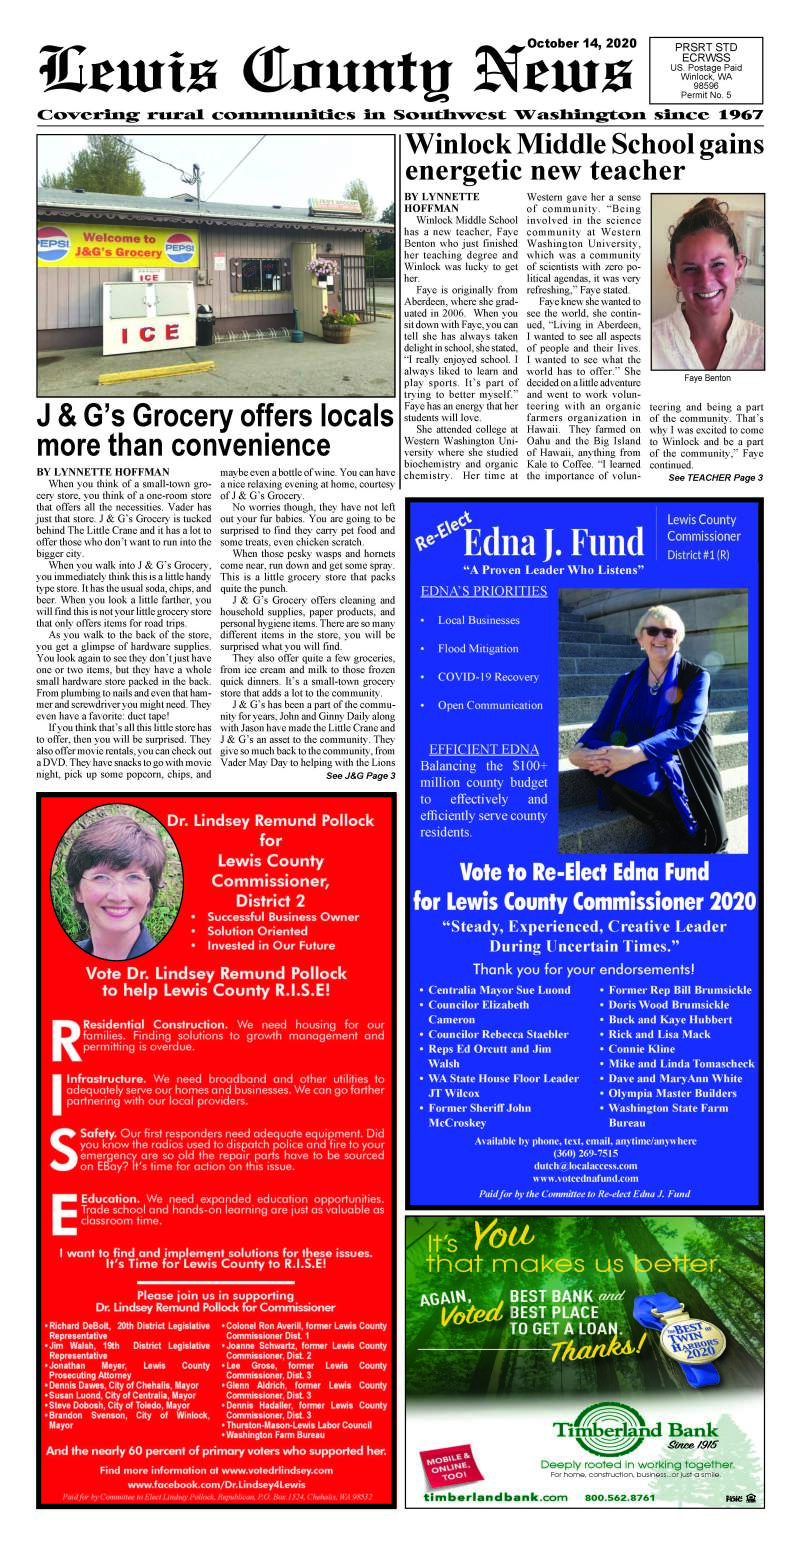 October 14, 2020 Lewis County News